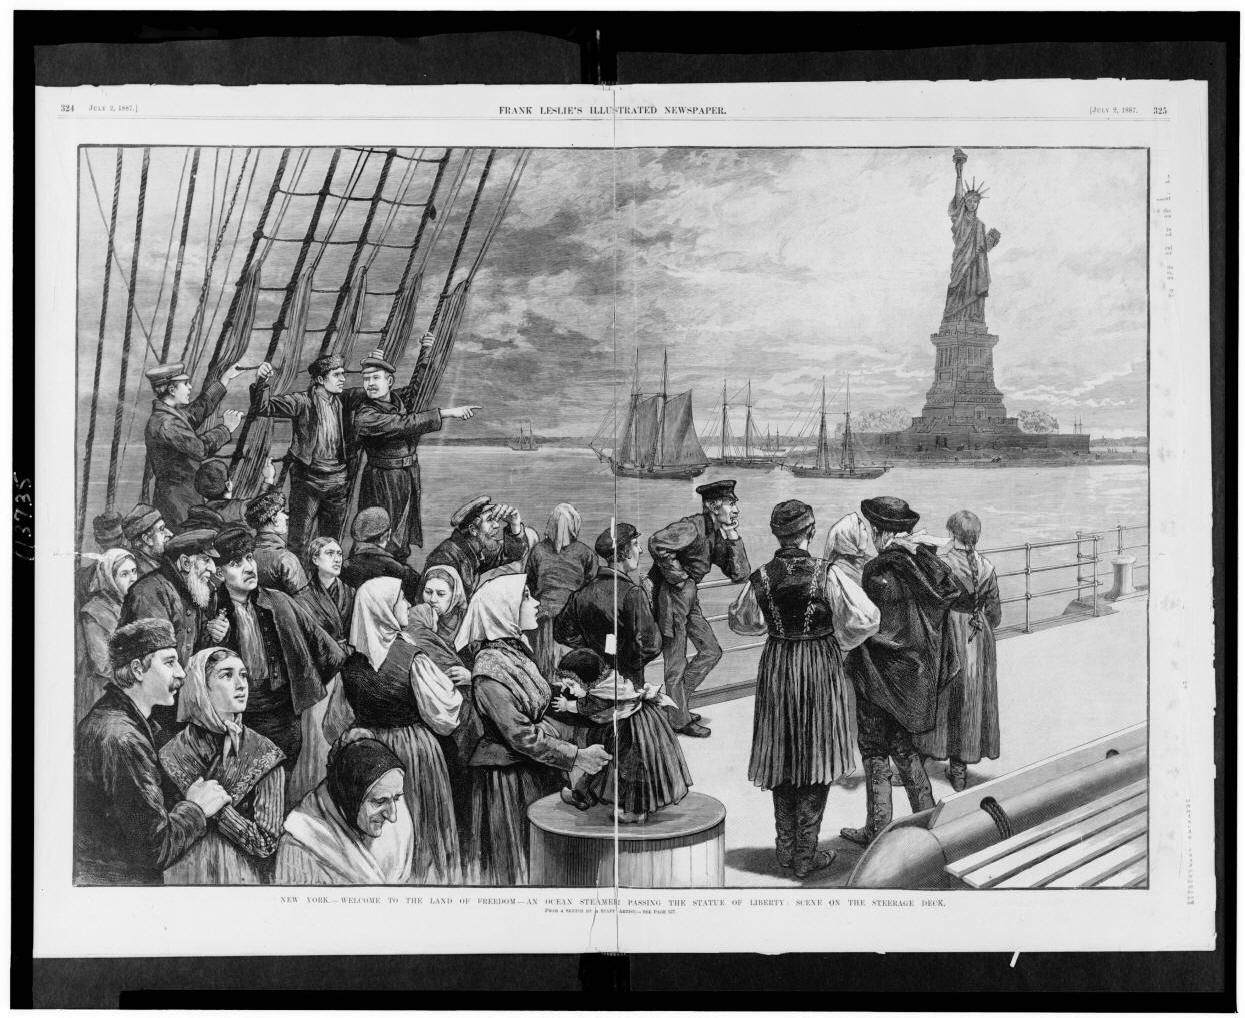 A brief history of the statue of liberty and ellis island in new york